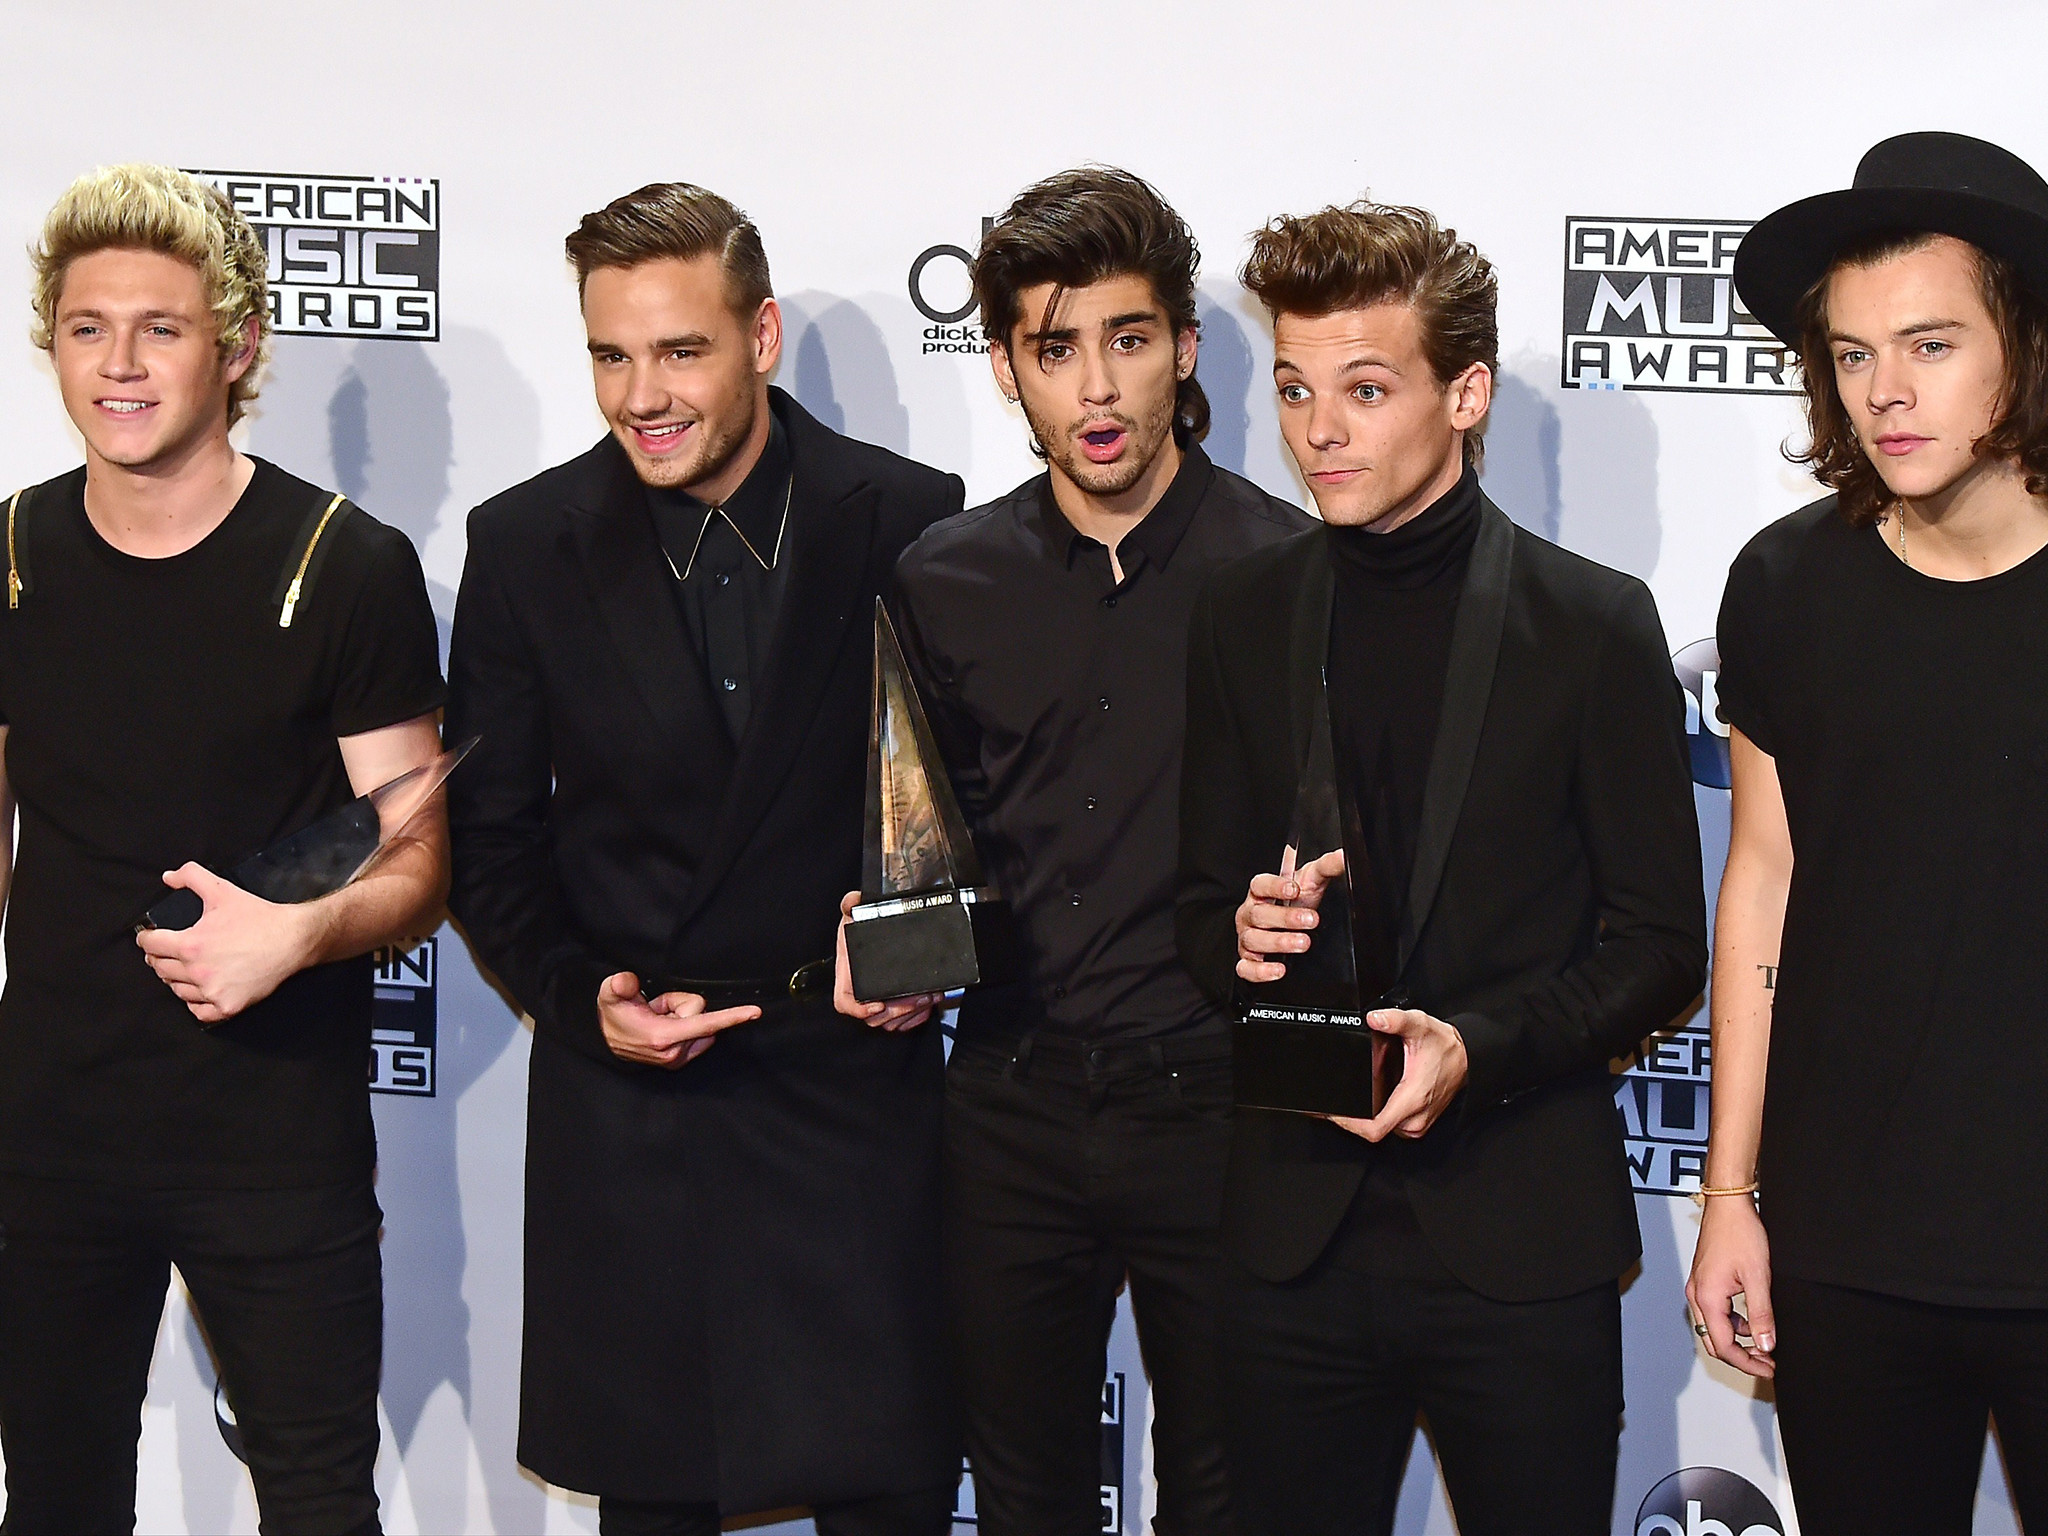 One Direction 'gutted' after Zayn Malik departure but remain 'stronger than  ever' | The Independent